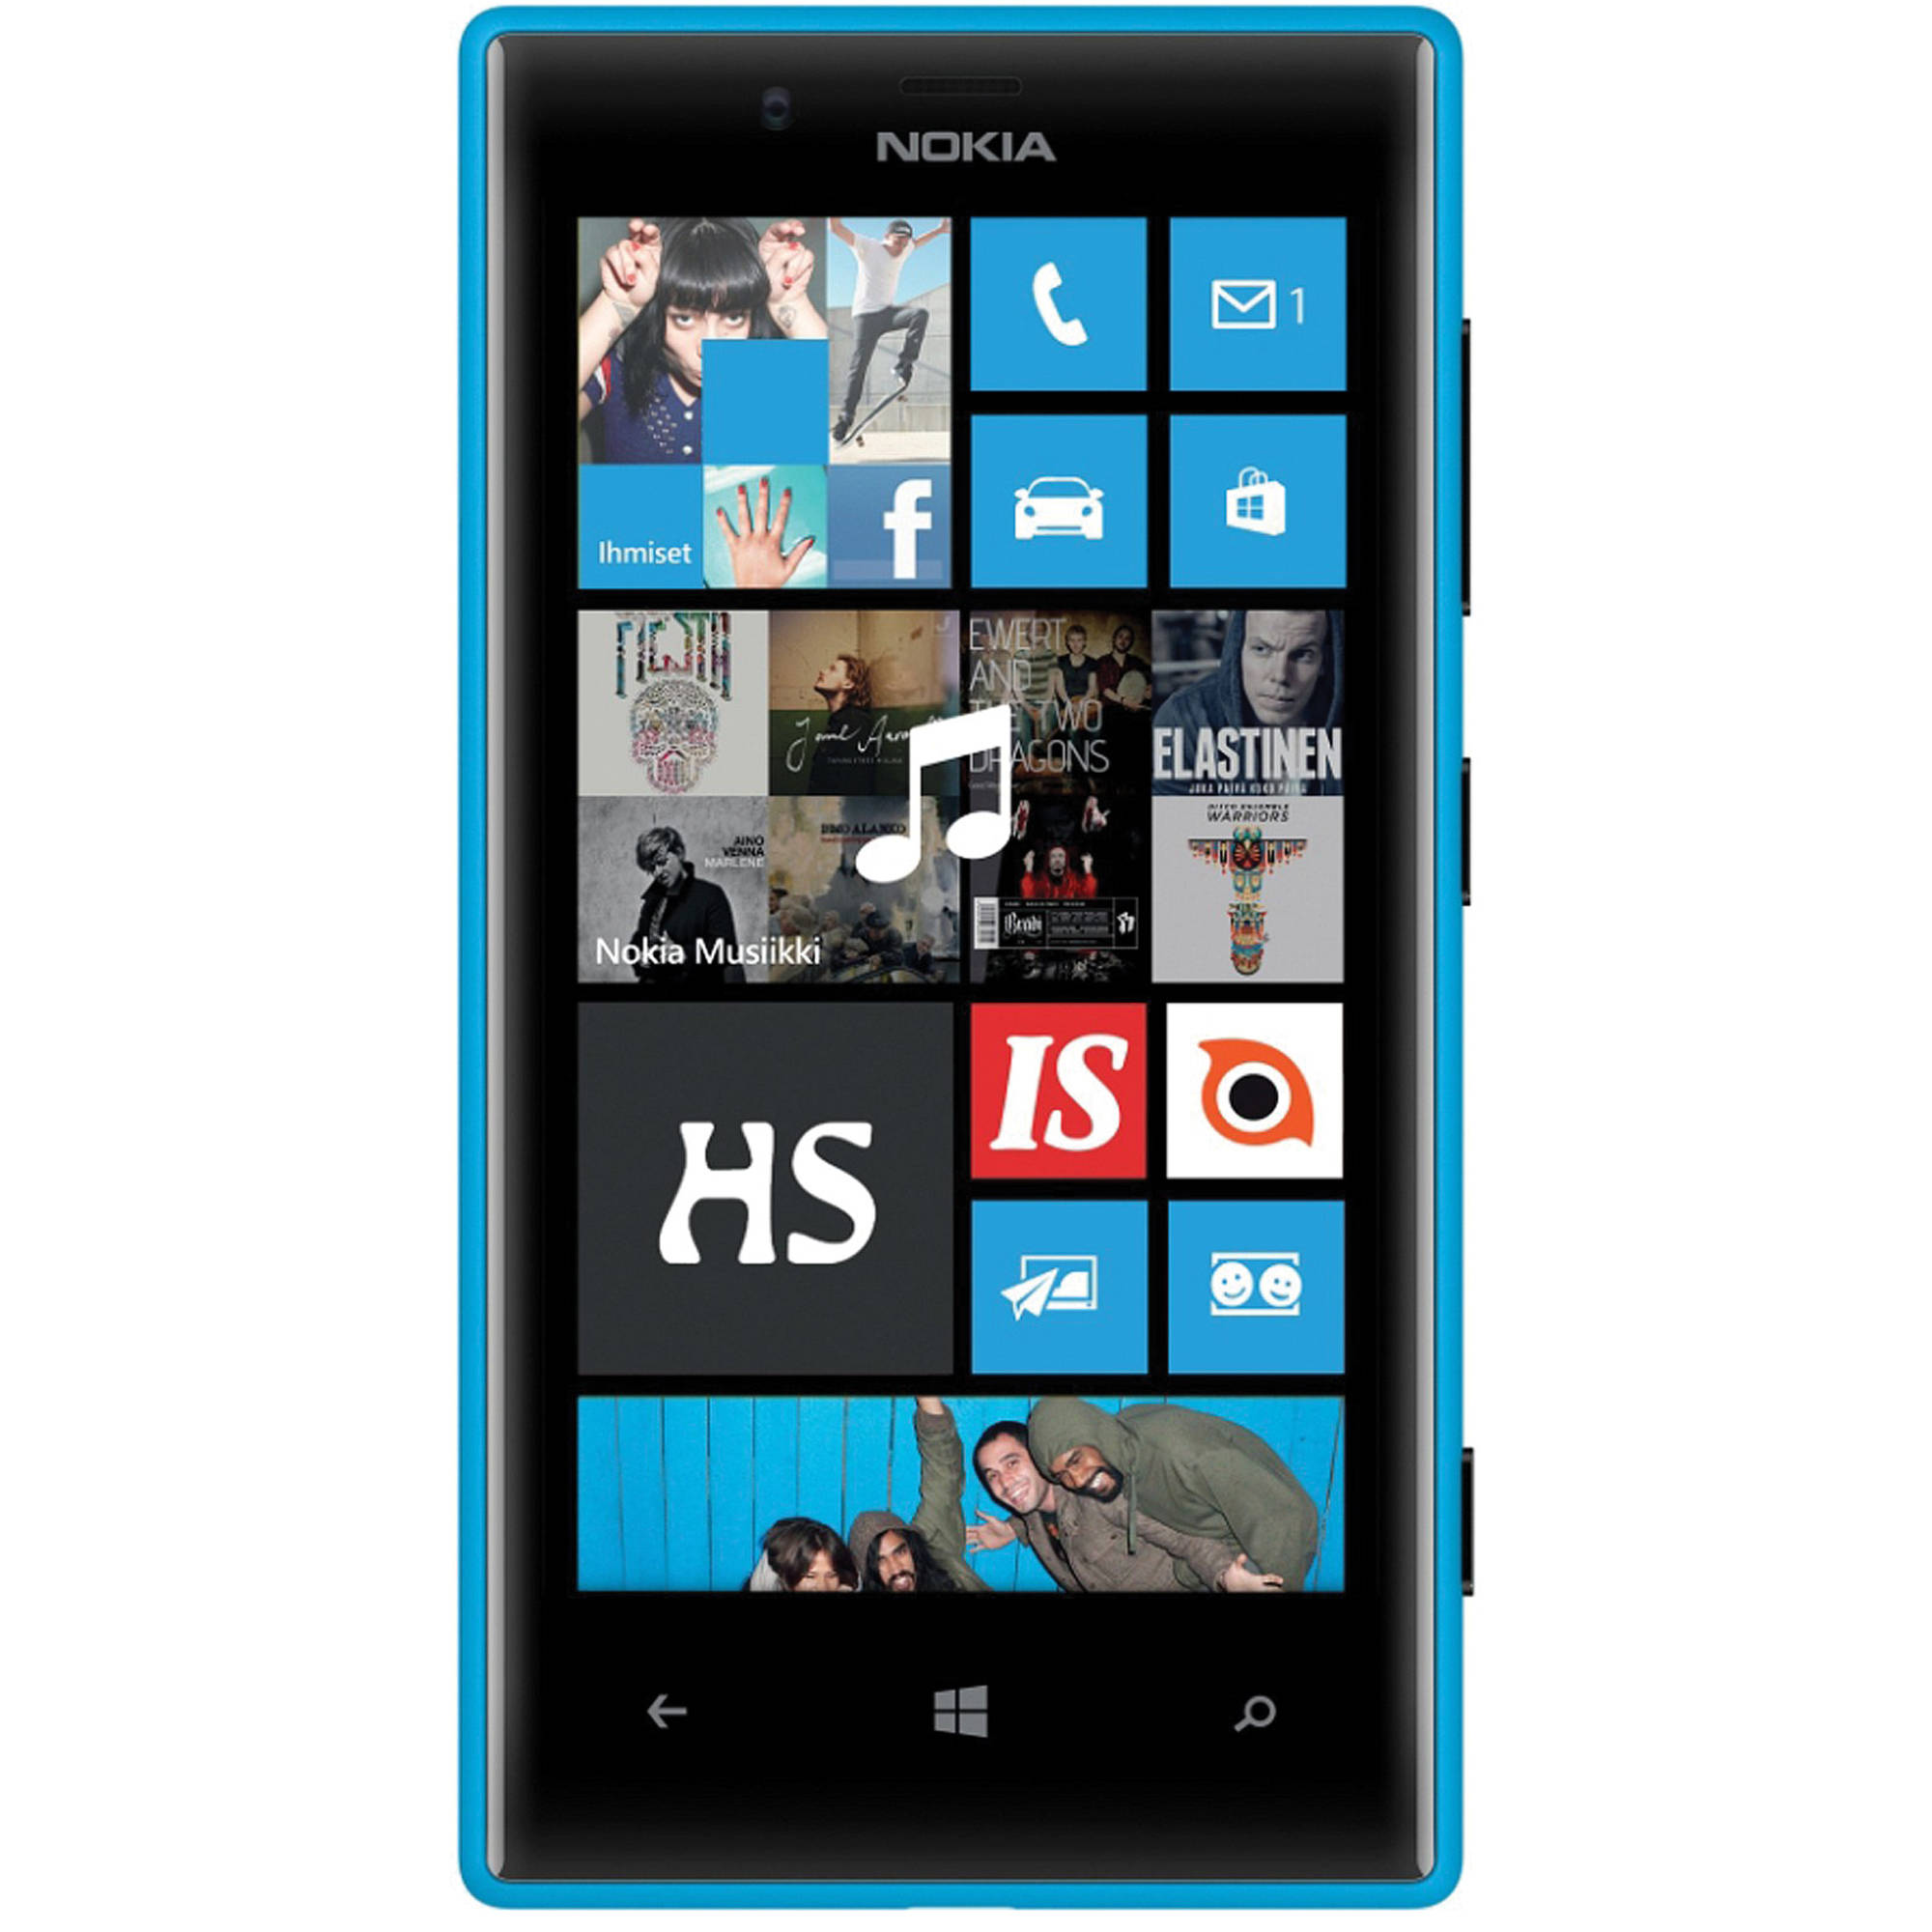 Smartphone Nokia Lumia 720: characteristics, instructions, settings, reviews 63